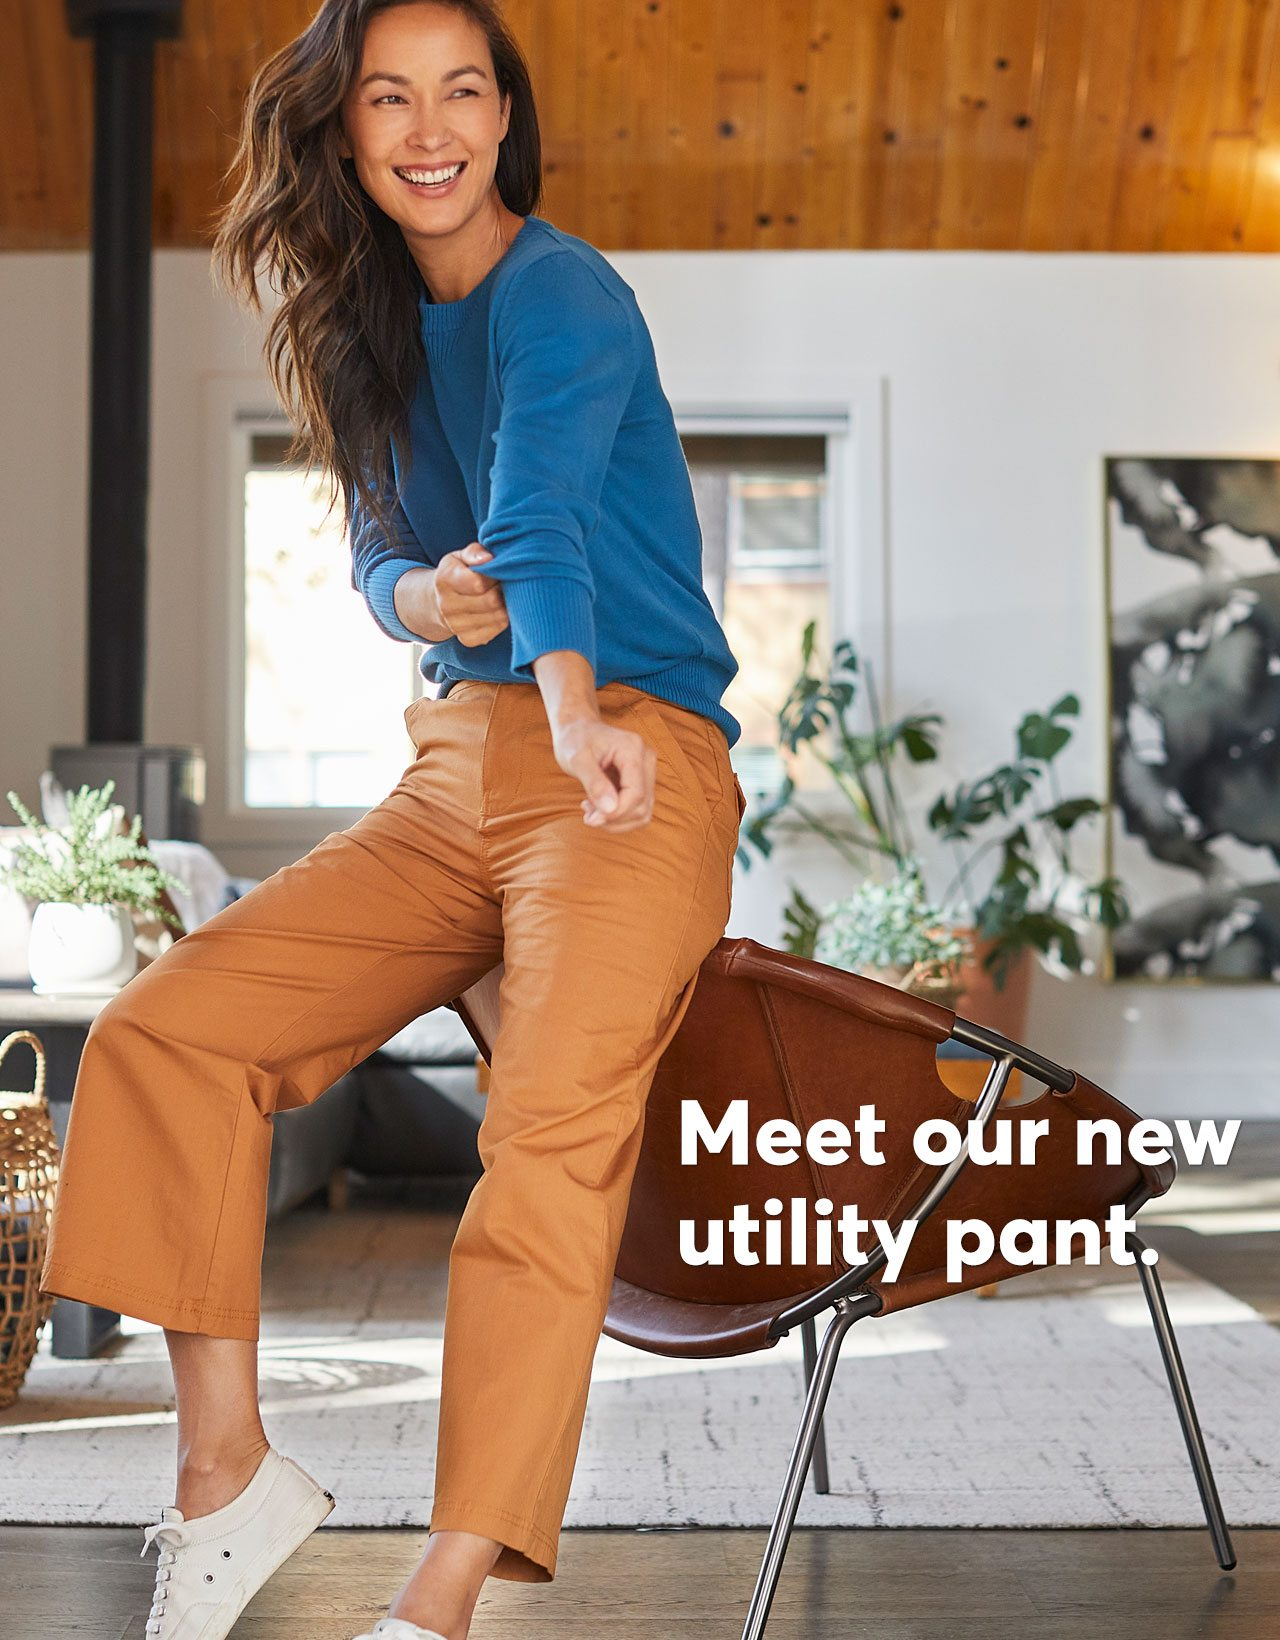 Meet our new utility pant.